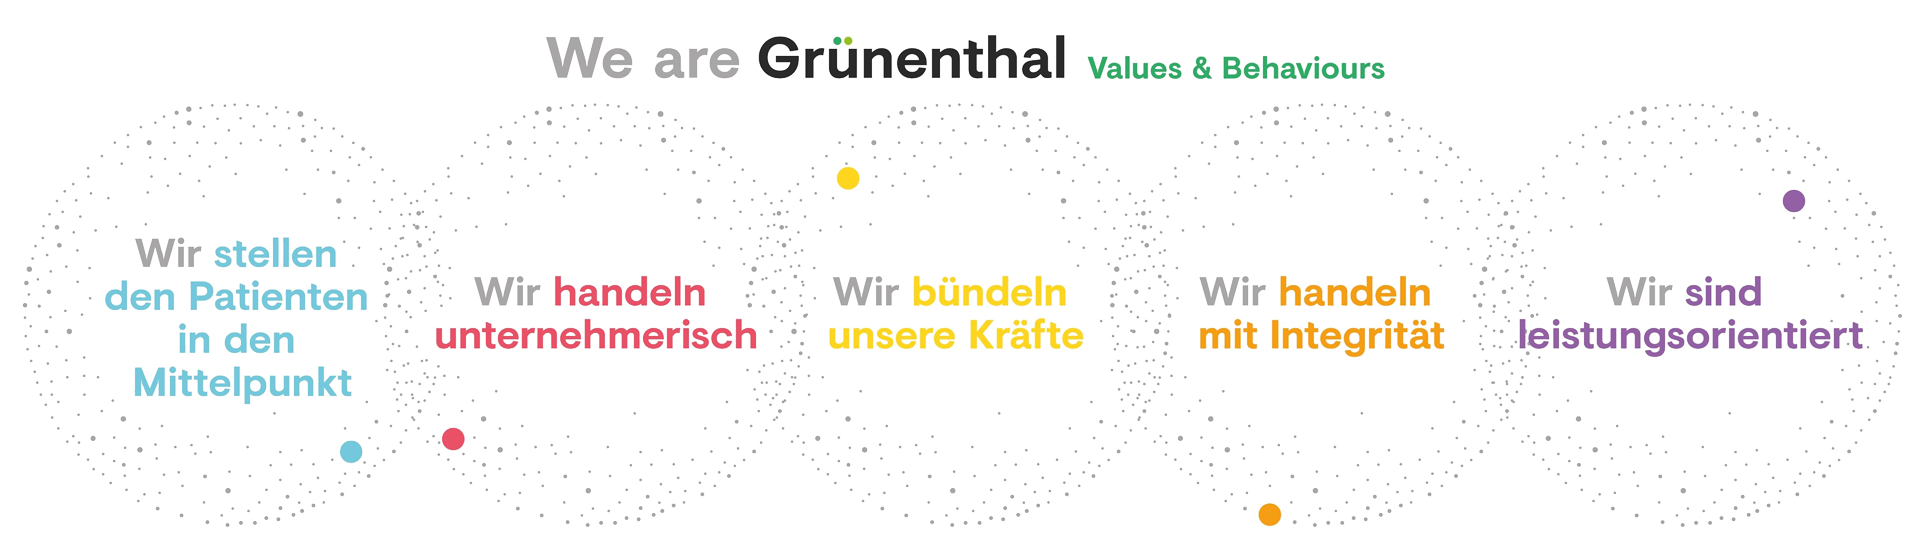 We are Grünenthal  Values & Behaviorus